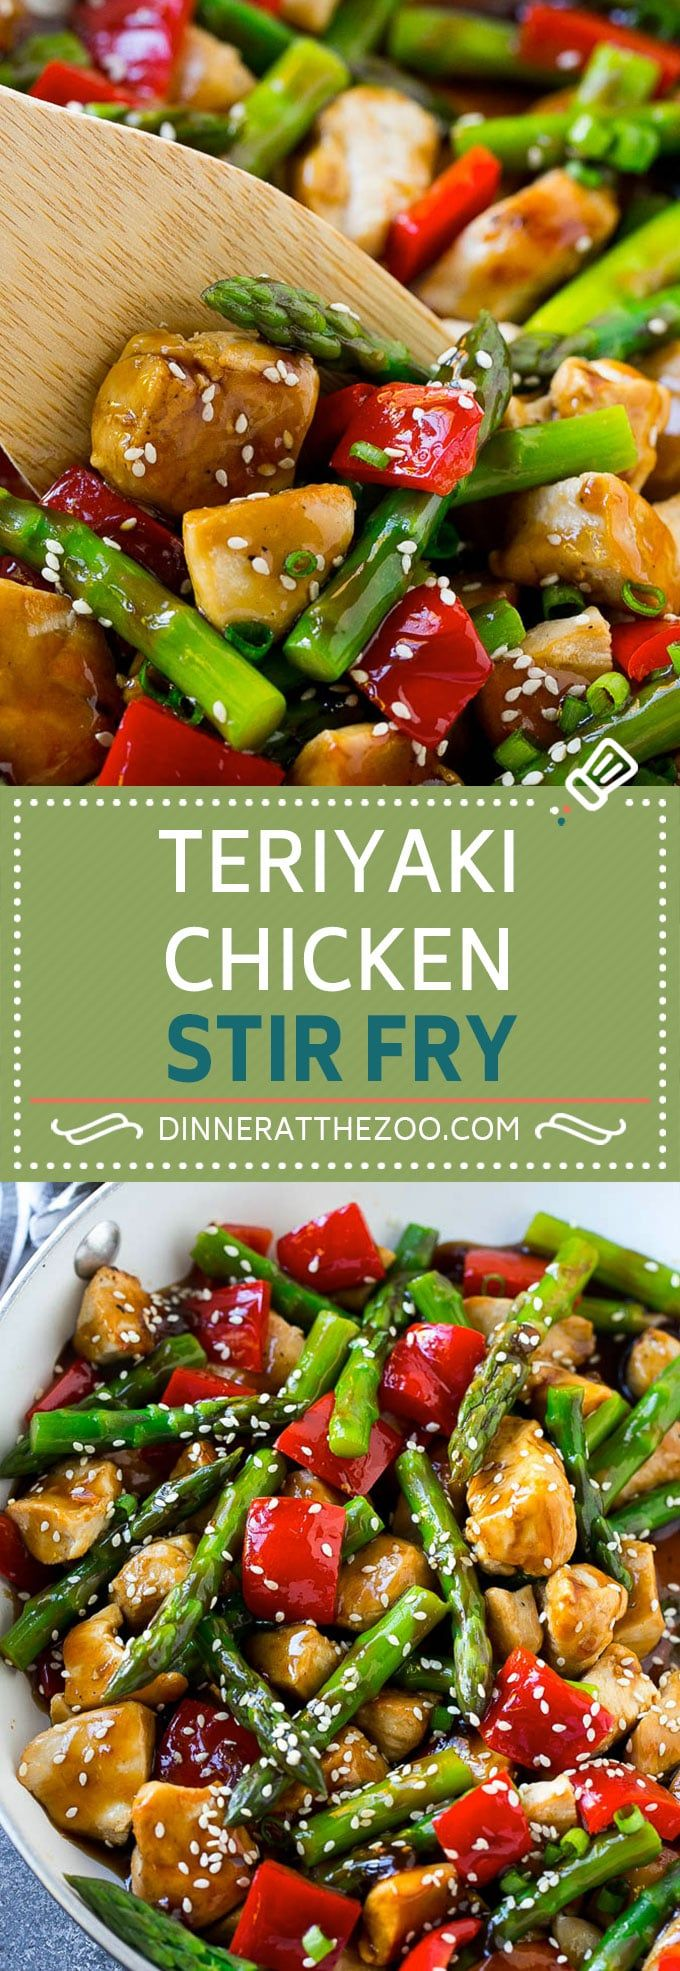 Teriyaki Chicken Stir Fry Recipe | Chicken Teriyaki | Chicken Stir Fry | Healthy Chicken Recipe